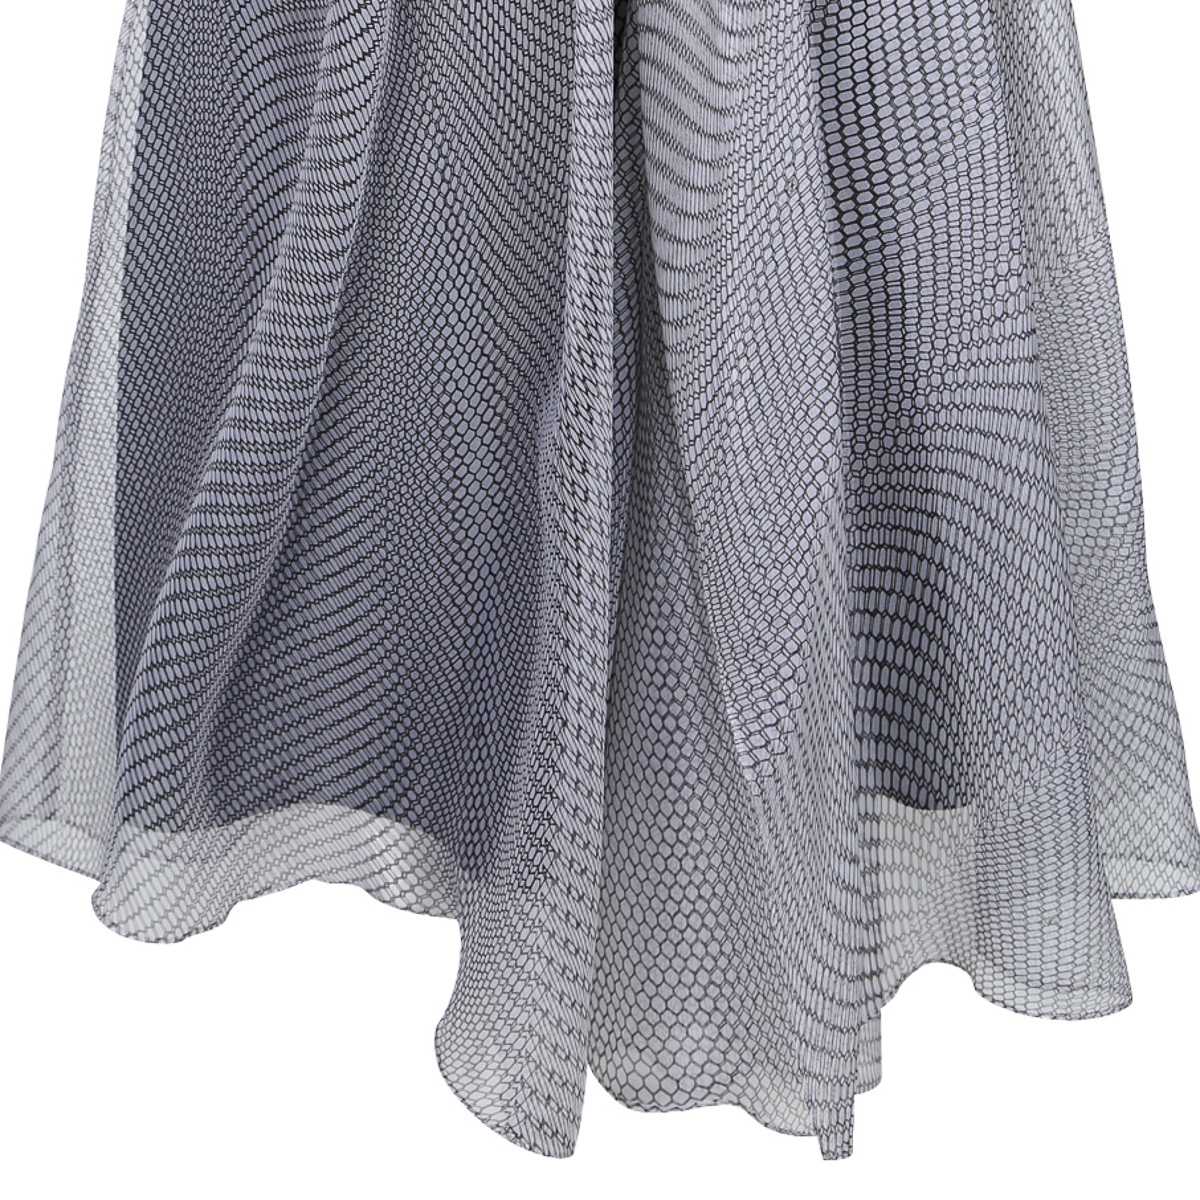 DOROTHEE SCHUMACHER_SPRING SUMMER 2015_WEIGHTLESS MESH_SKIRT_BLACK AND WHITE-4